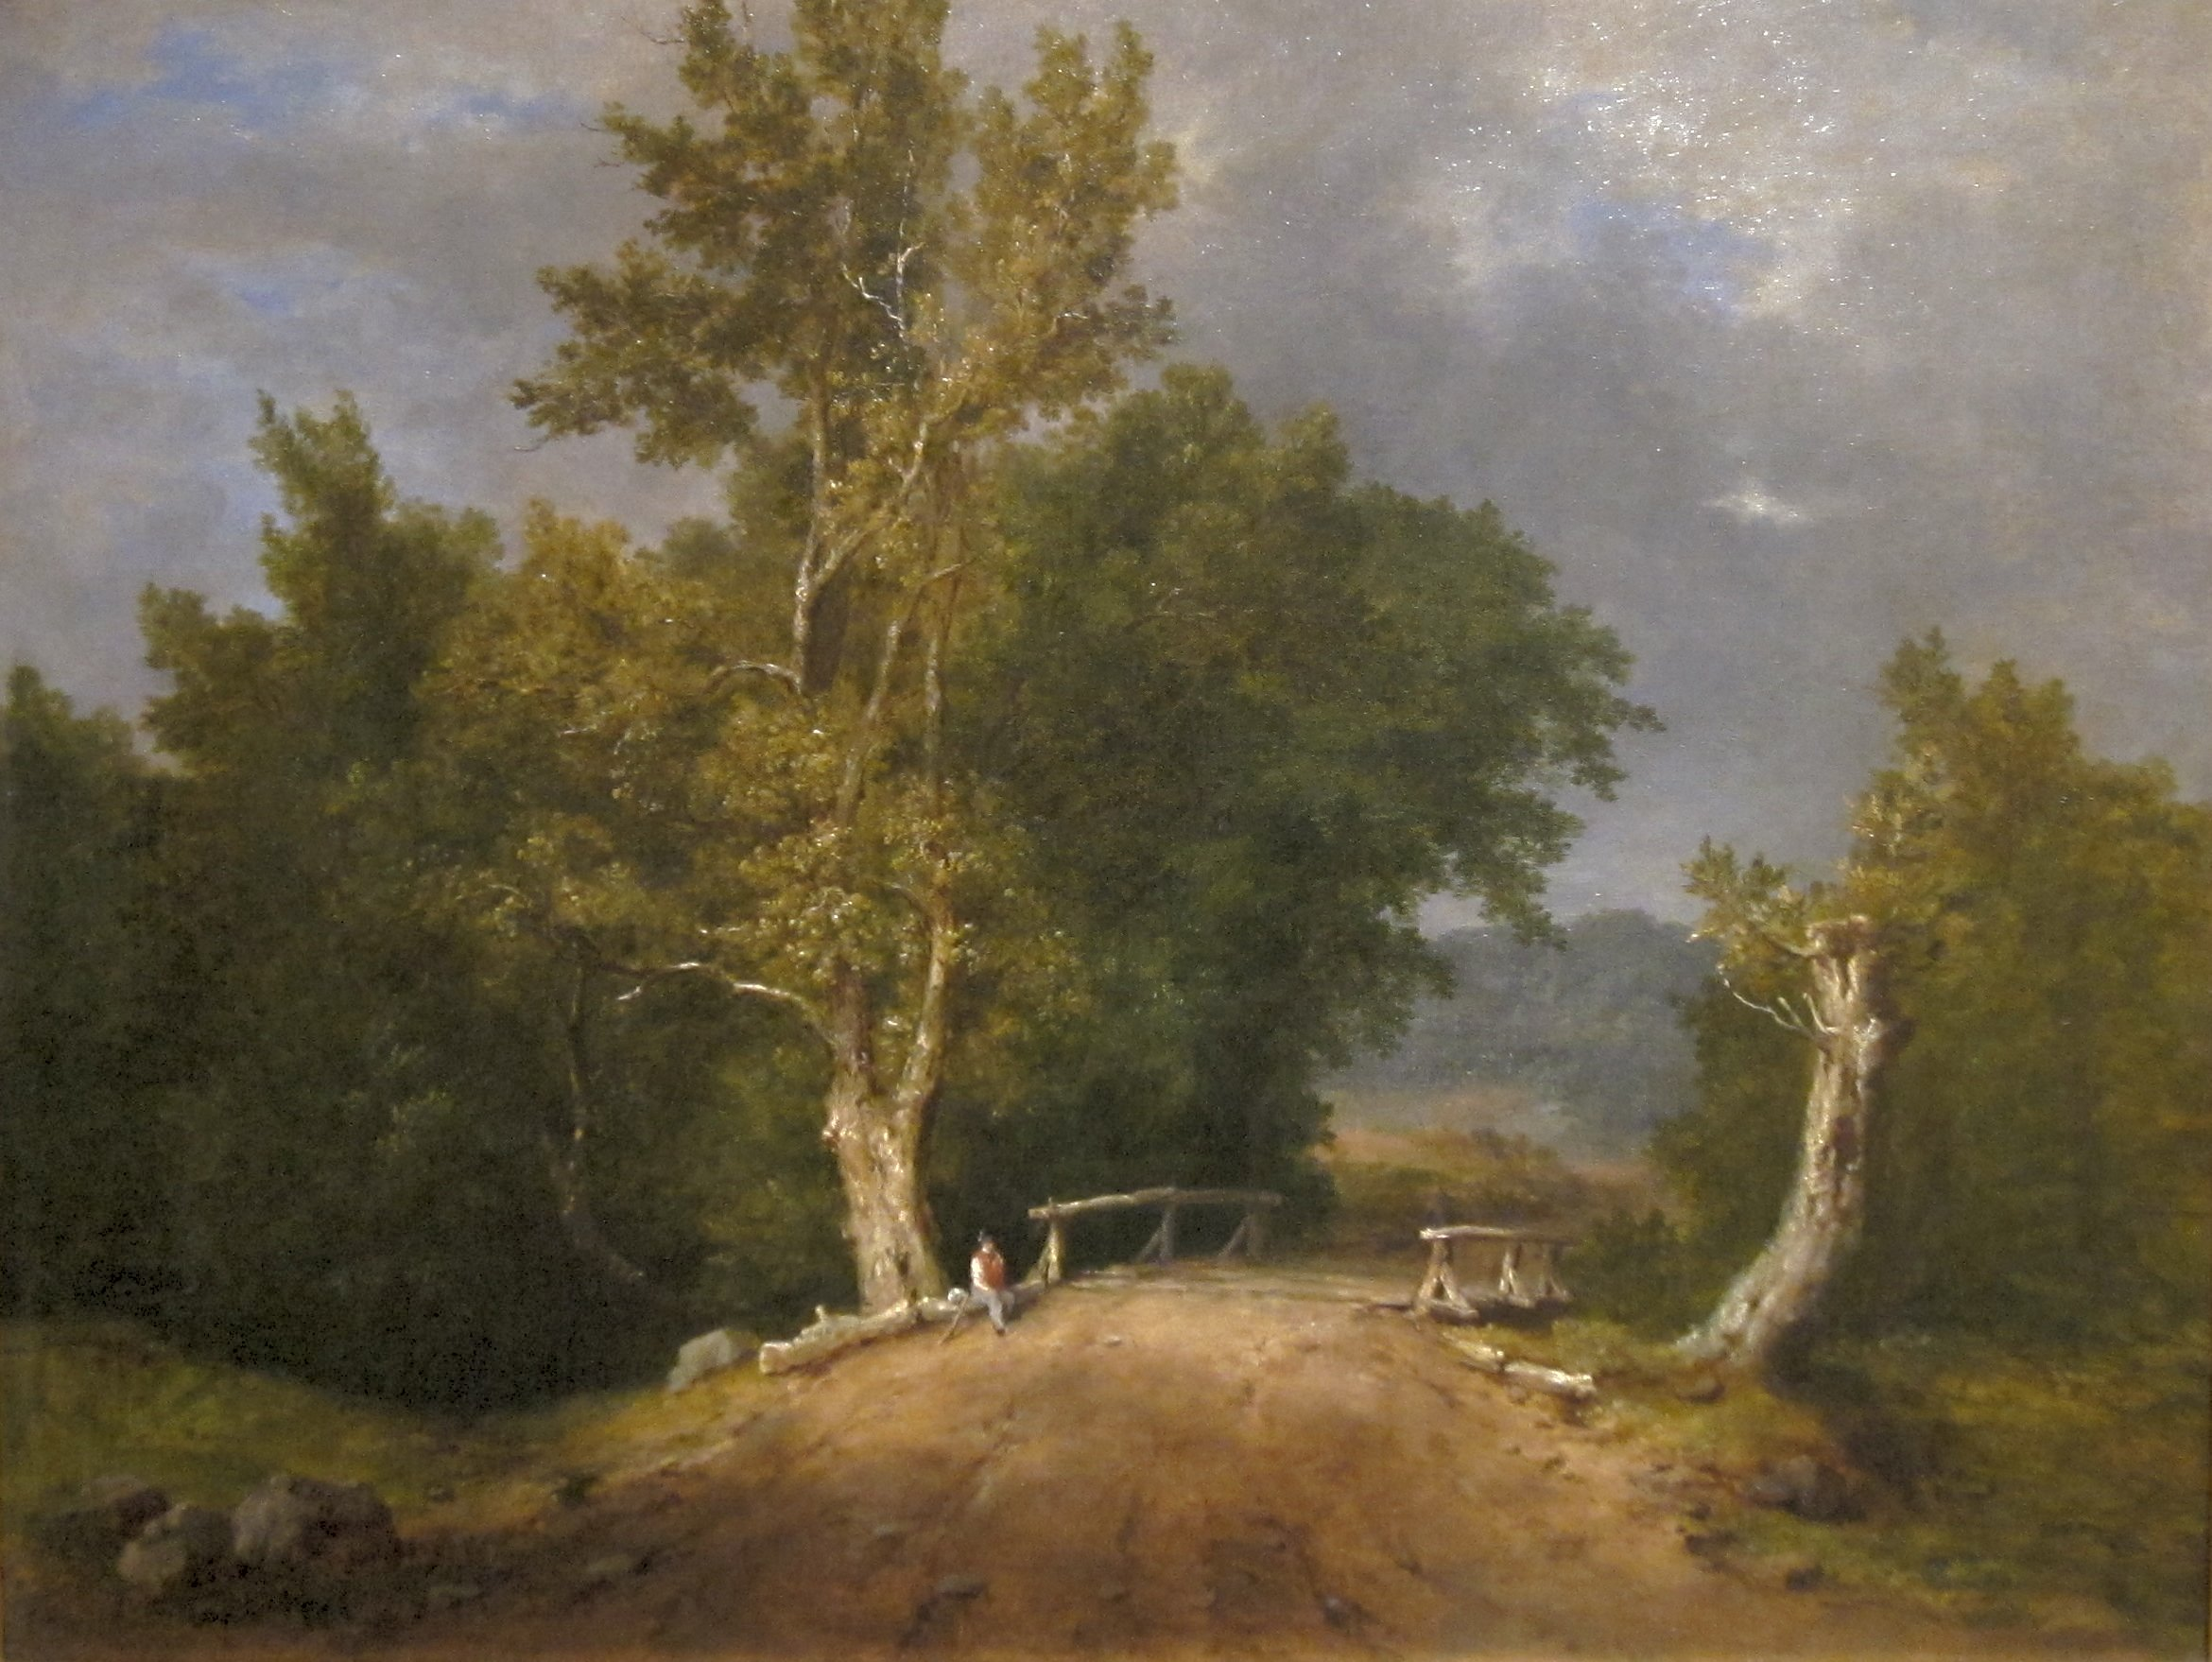 File:'Landscape' by George Inness, El Paso Museum of Art